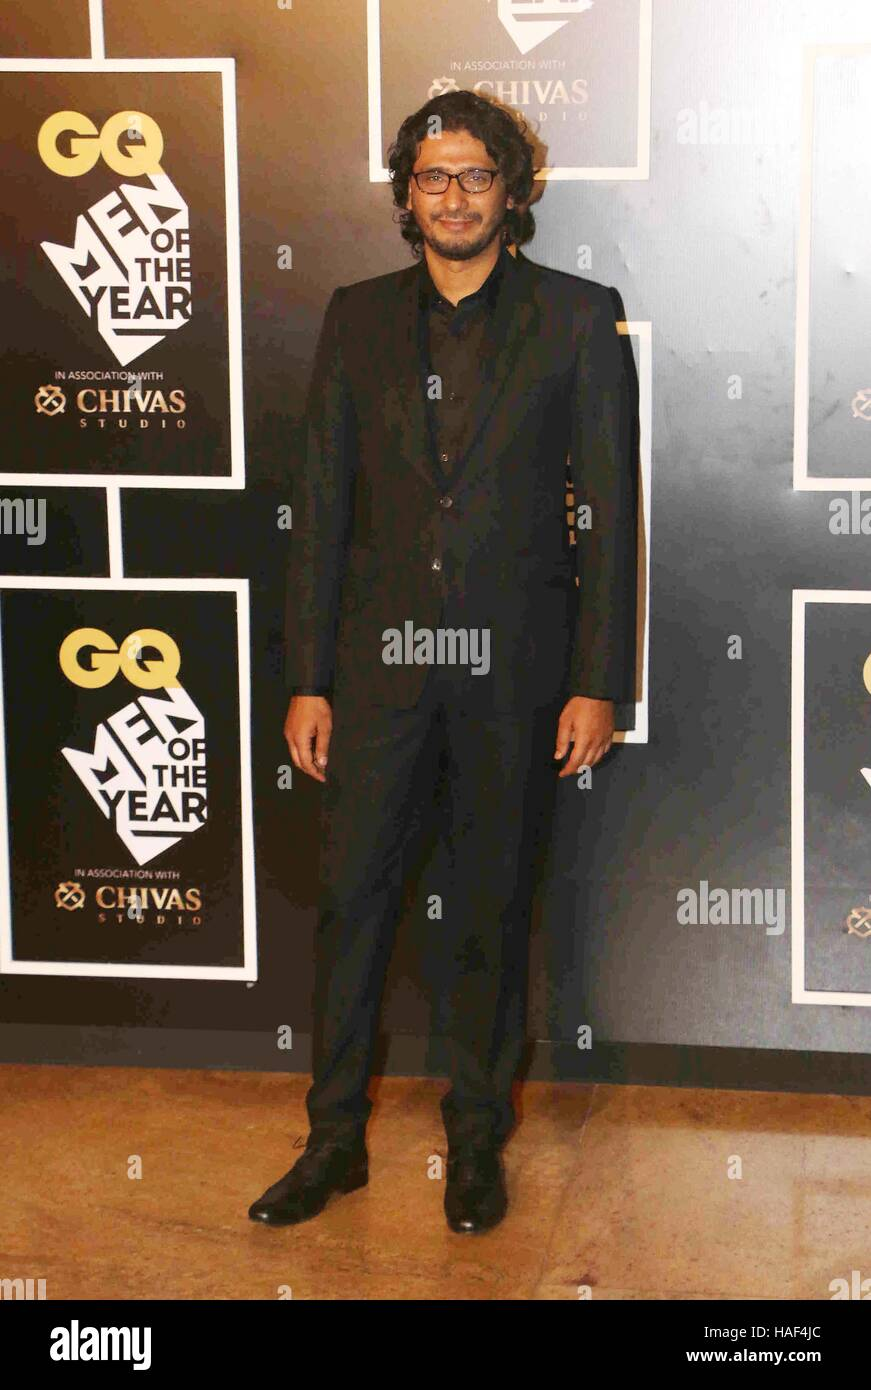 Bollywood filmmaker Abhishek Chaubey during the GQ India Men of the year Award 2016 ceremony in Mumbai, India - Stock Image